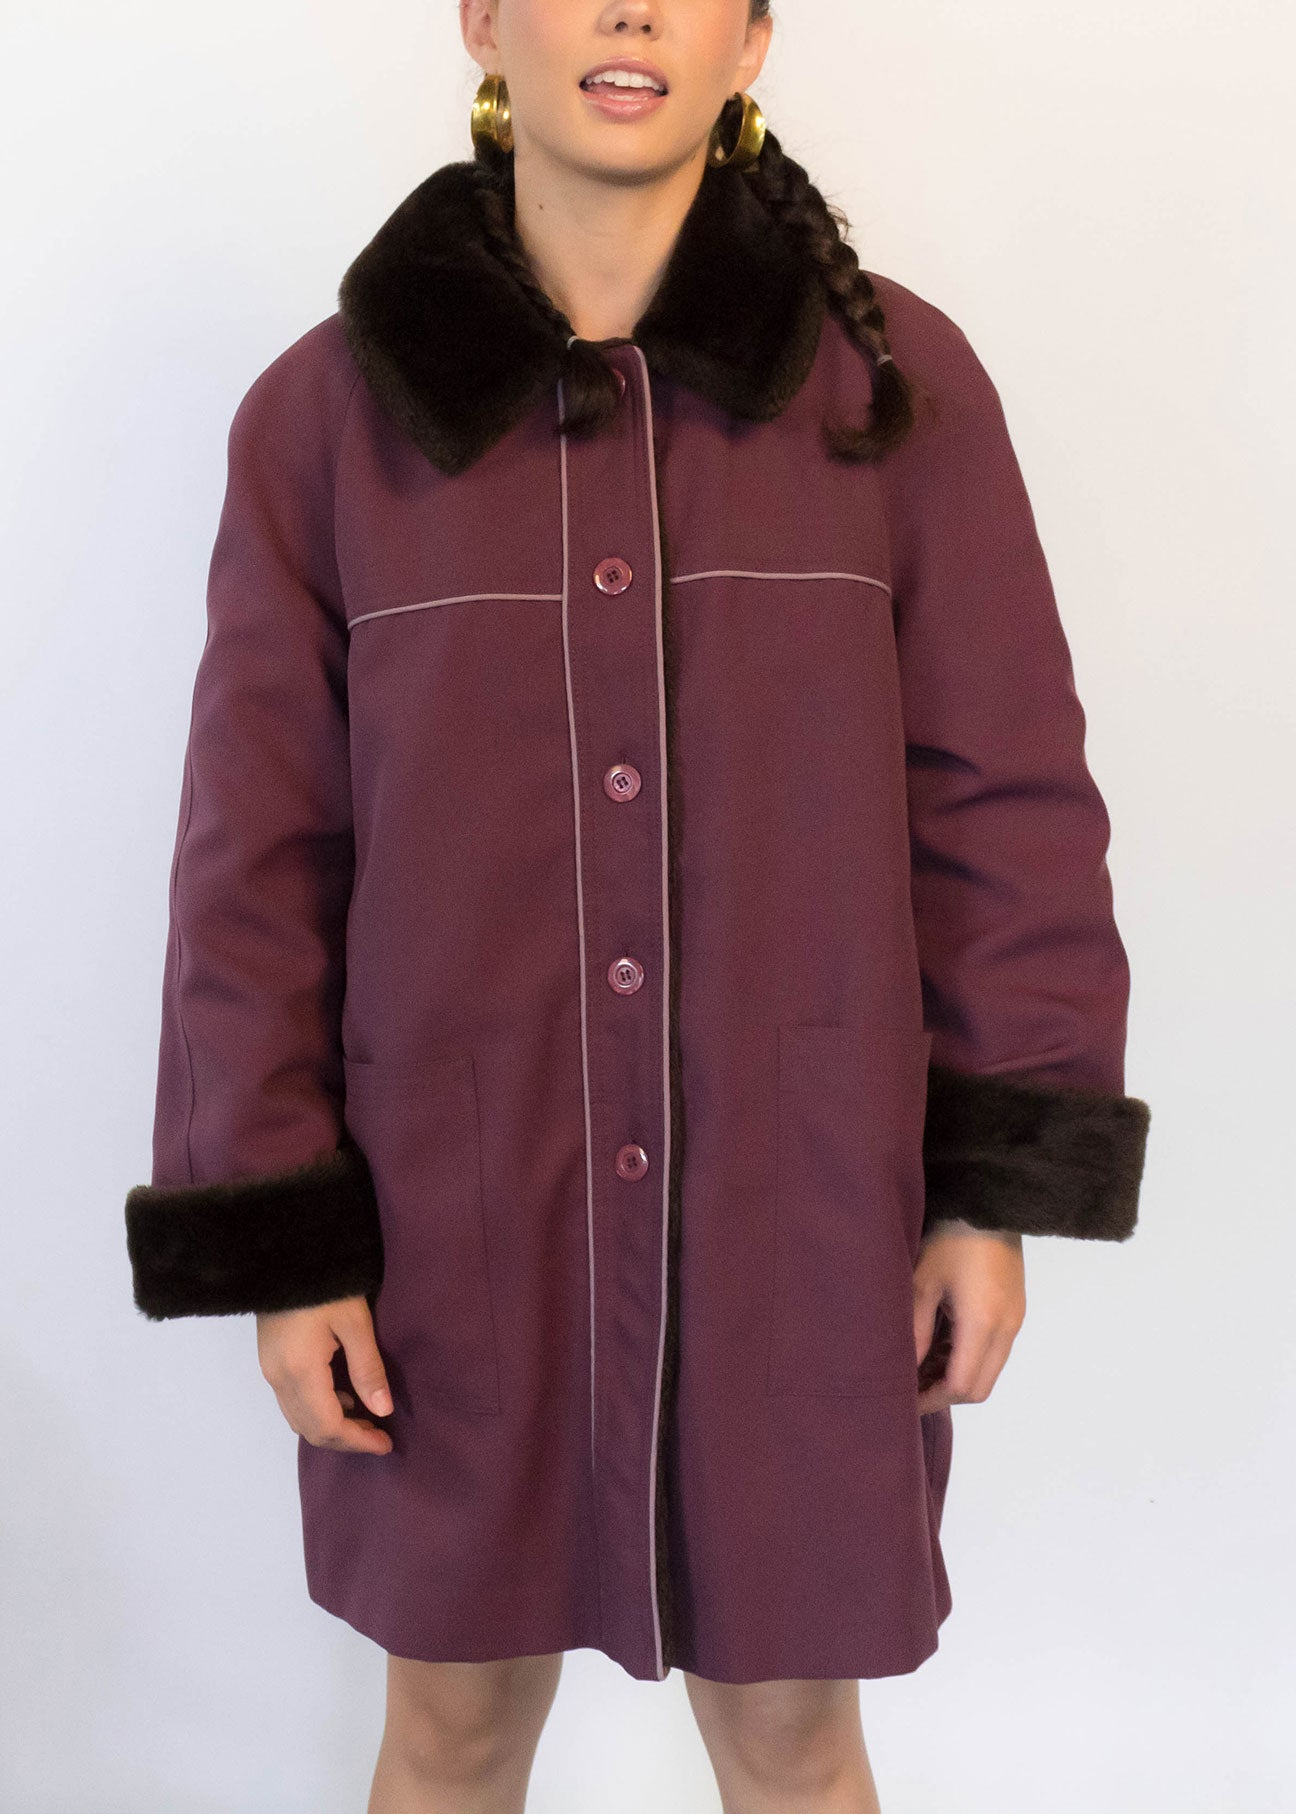 70s Faux Fur Raincoat